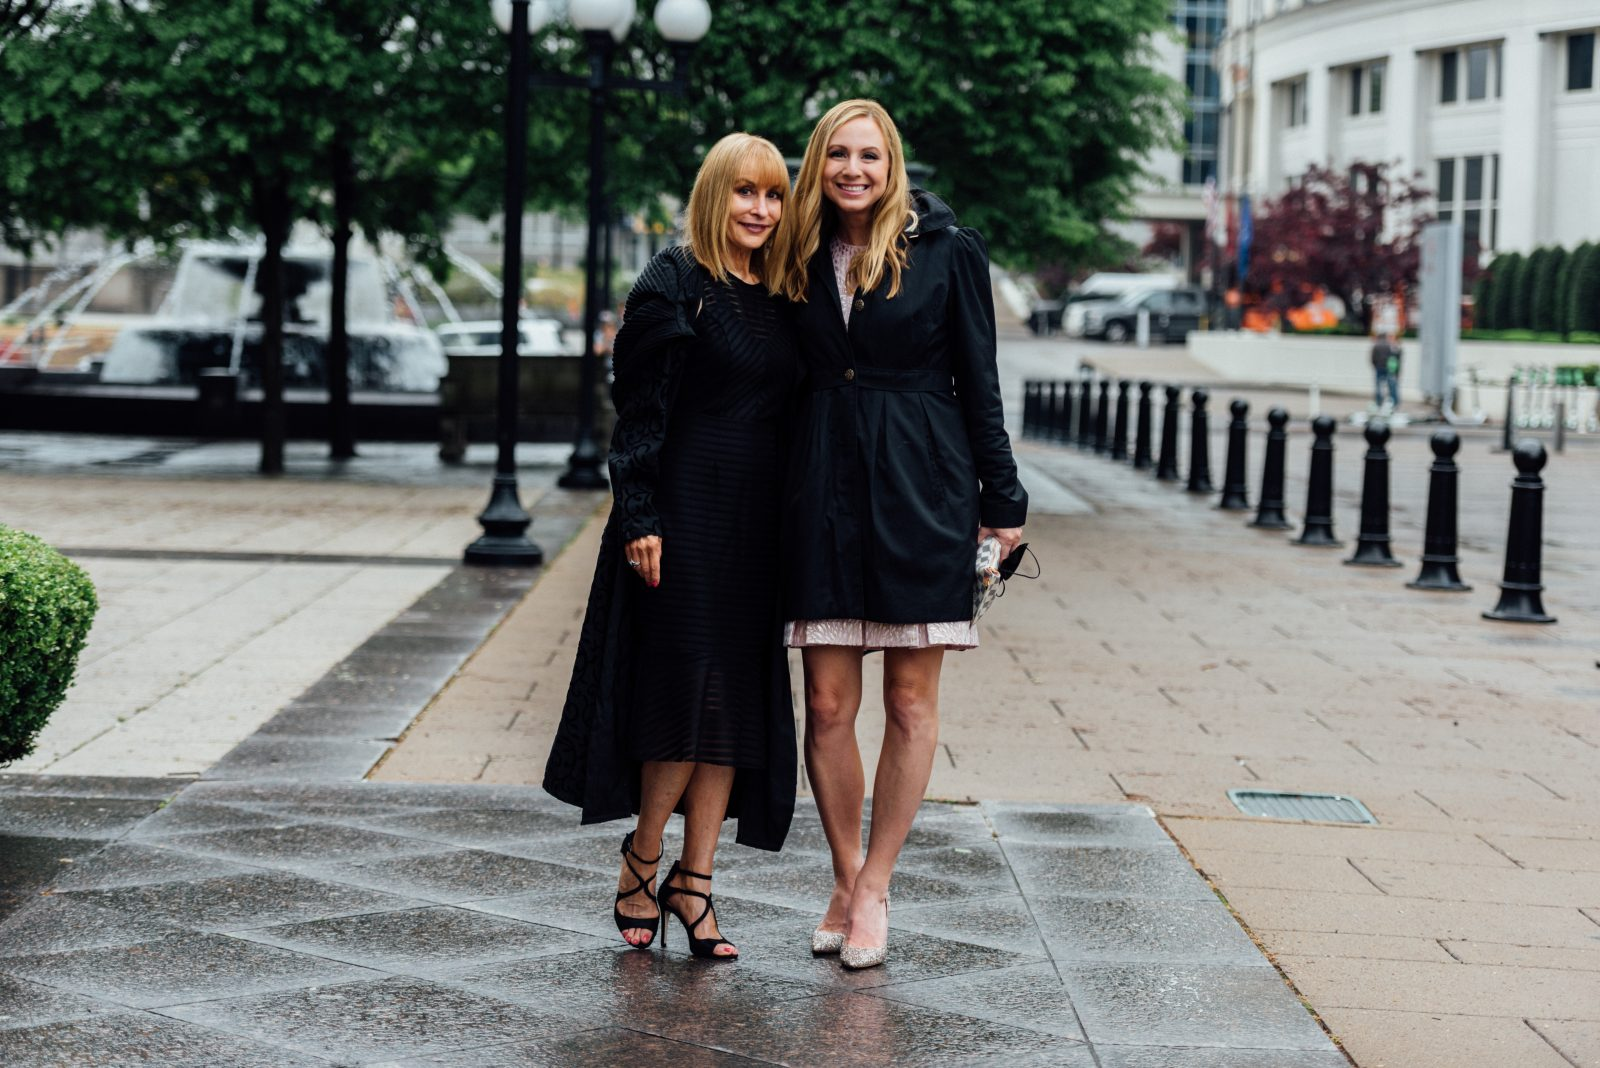 Styling in the rain with Stacey Rhodes and Danielle Breezy